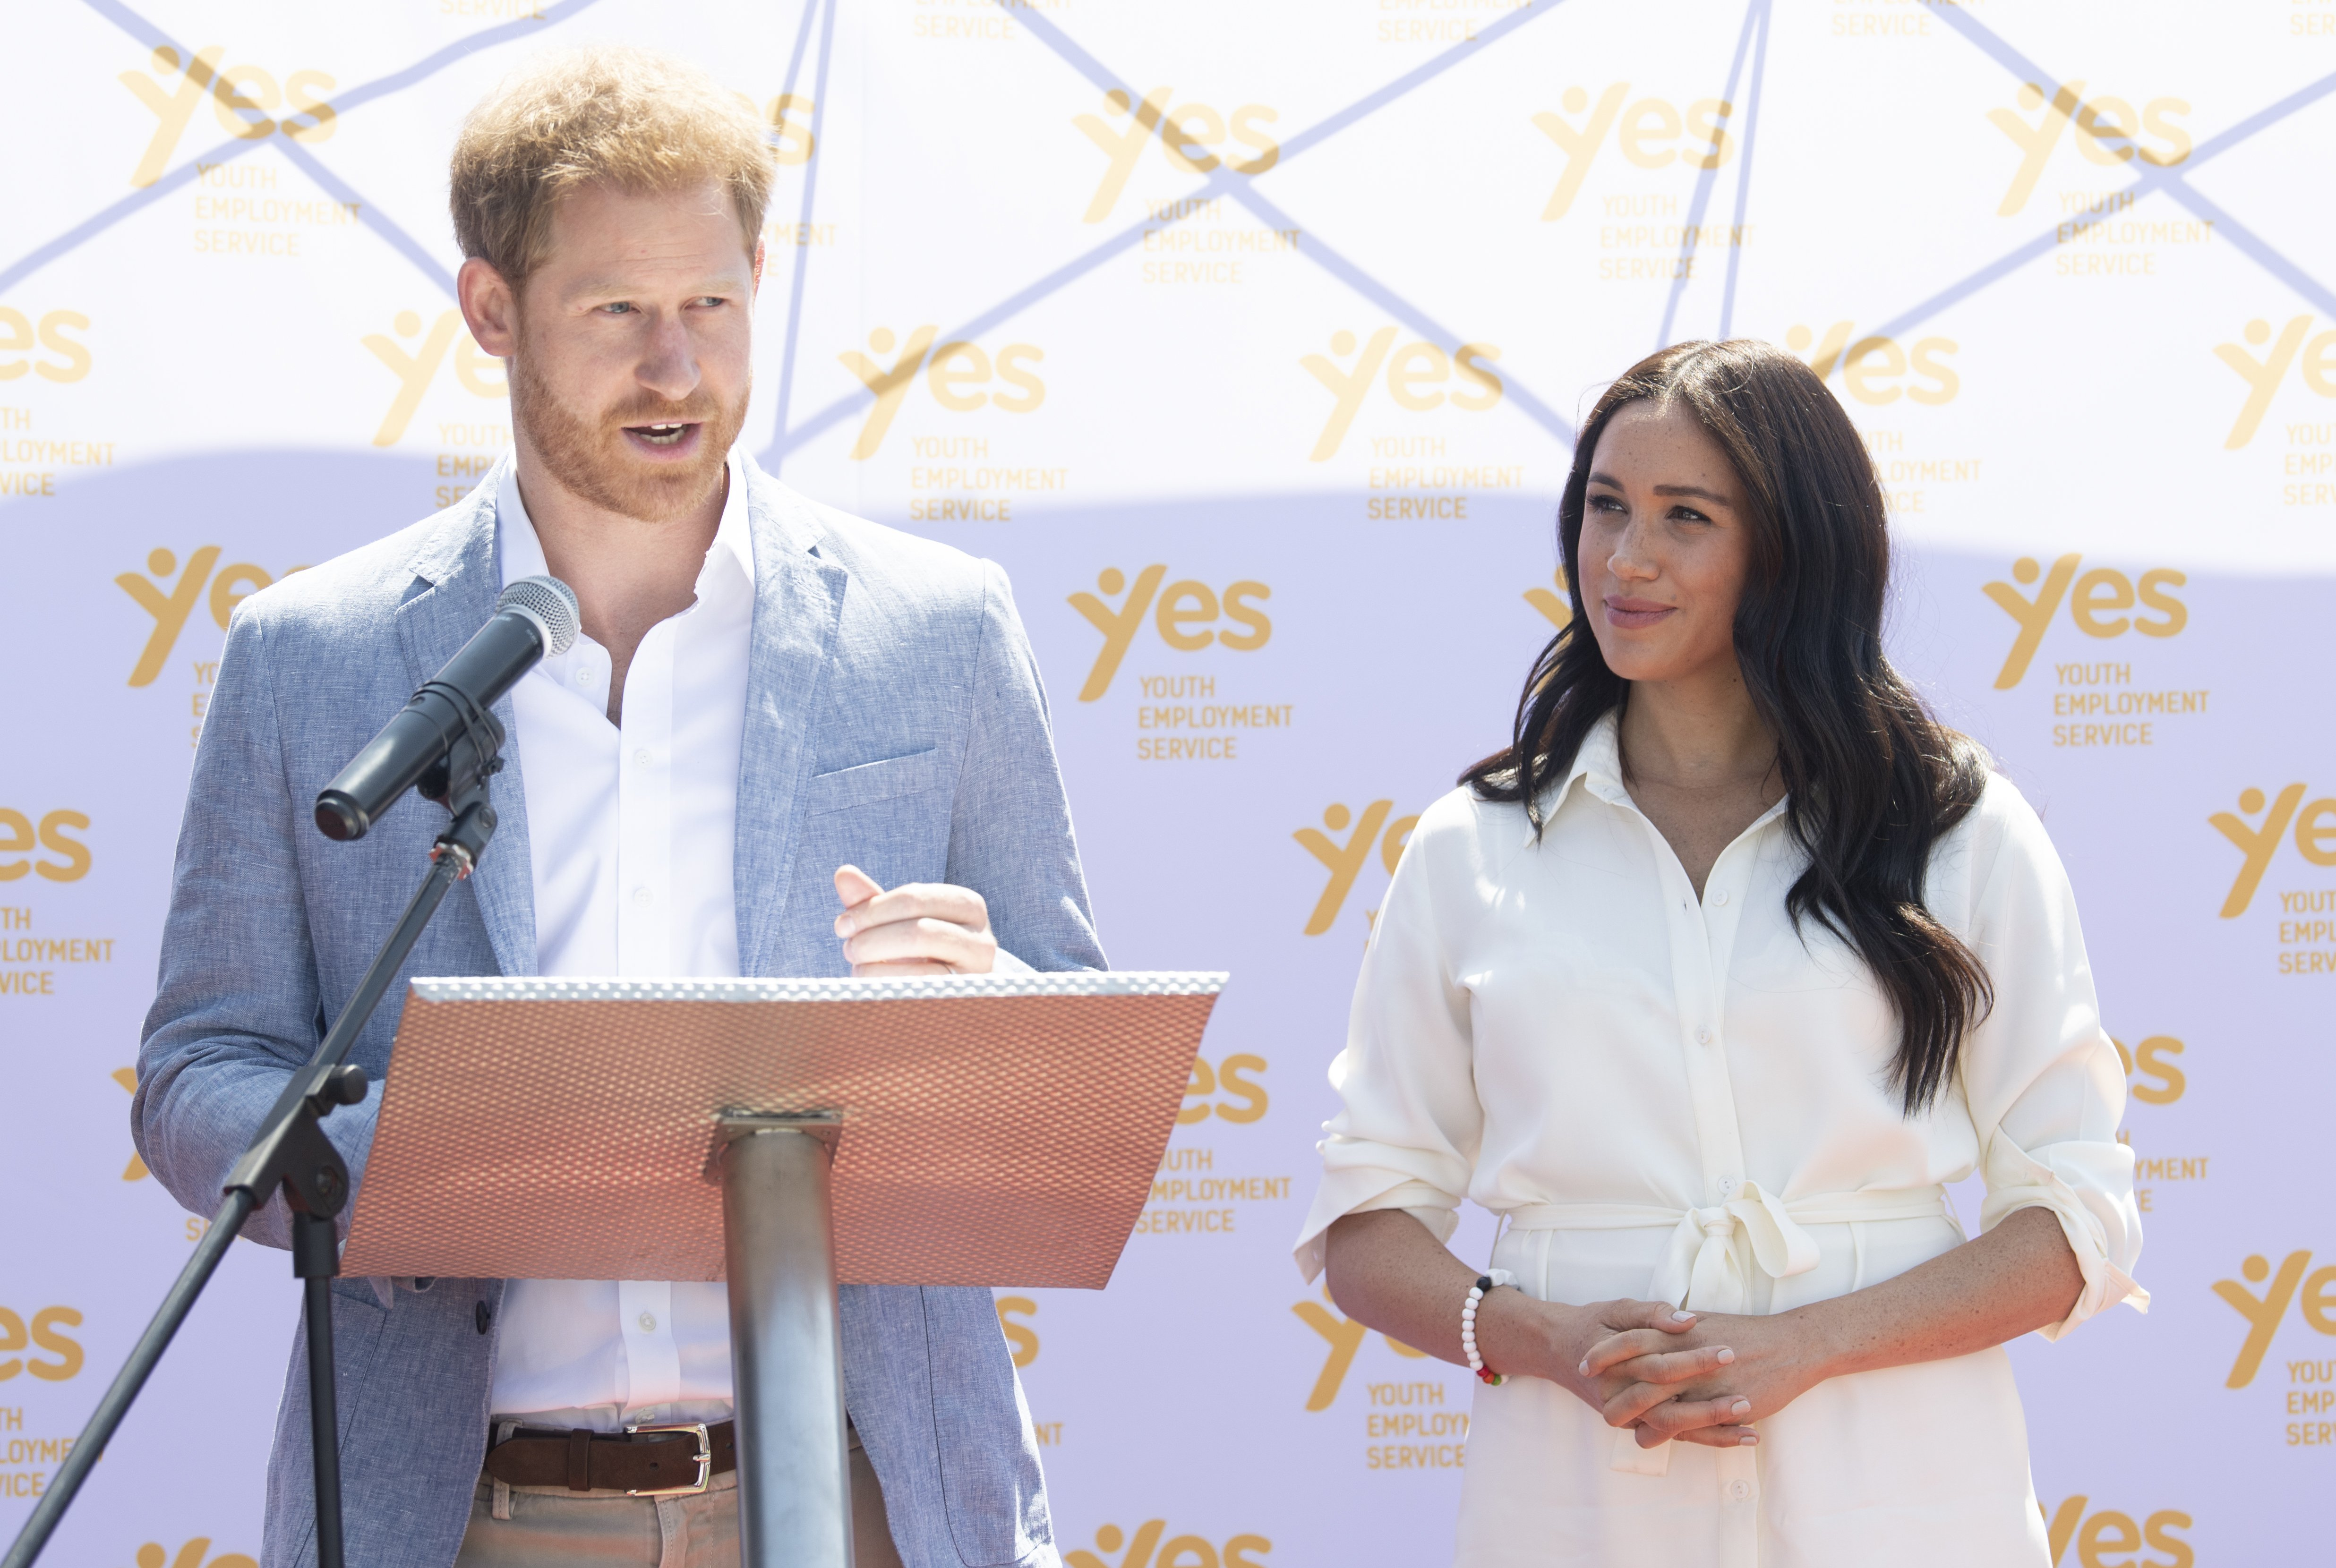 Prince Harry and Meghan visit Tembisa township to learn about Youth Employment Services (YES) on October 2, 2019 in Johannesburg, South Africa. | Source: Getty Images